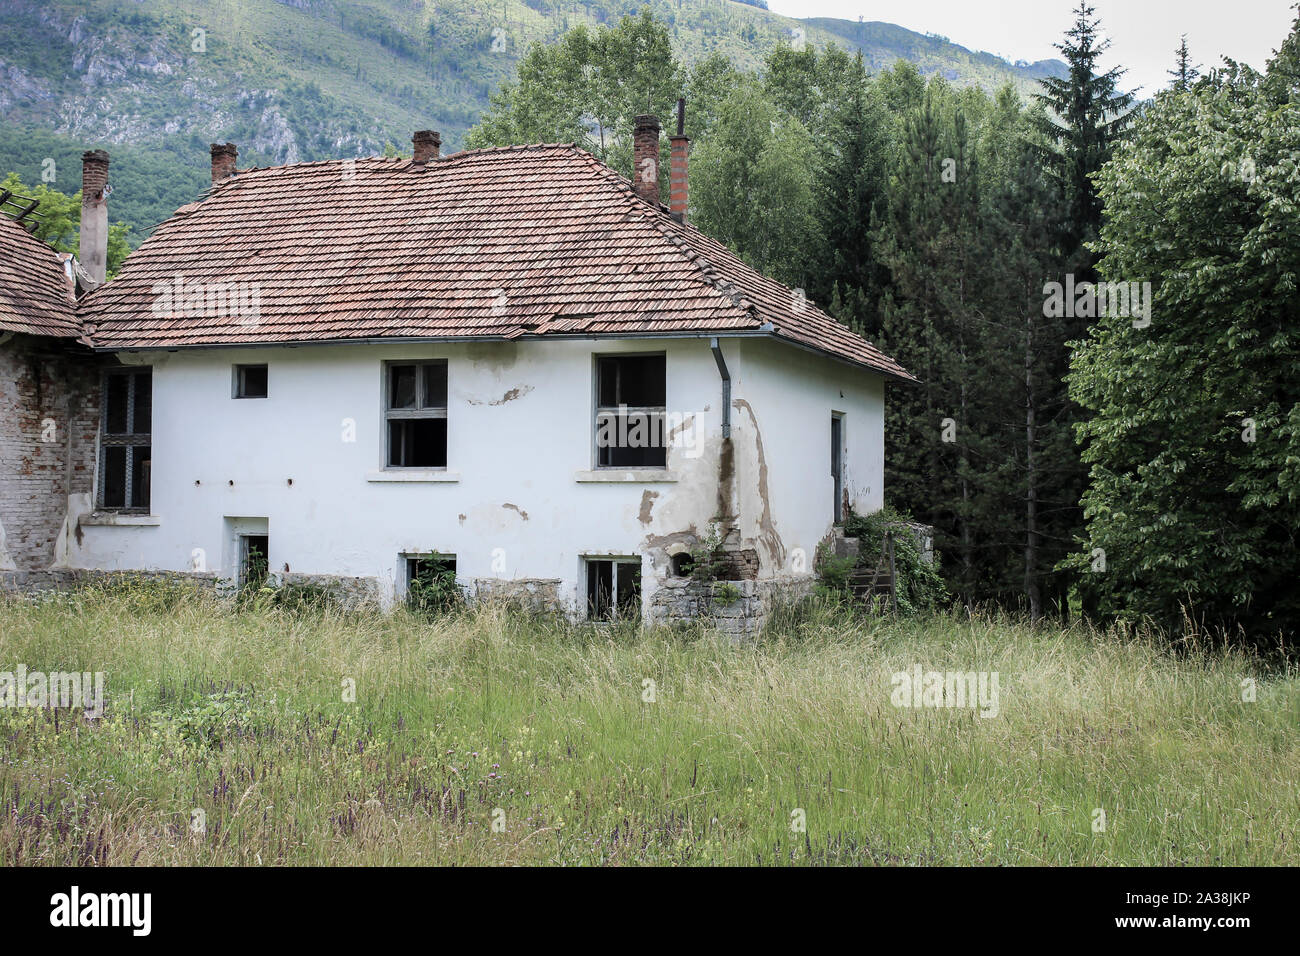 Desaturated view of old, abandoned, ruined school building on a mountain, foreground long grass and background pine trees Stock Photo